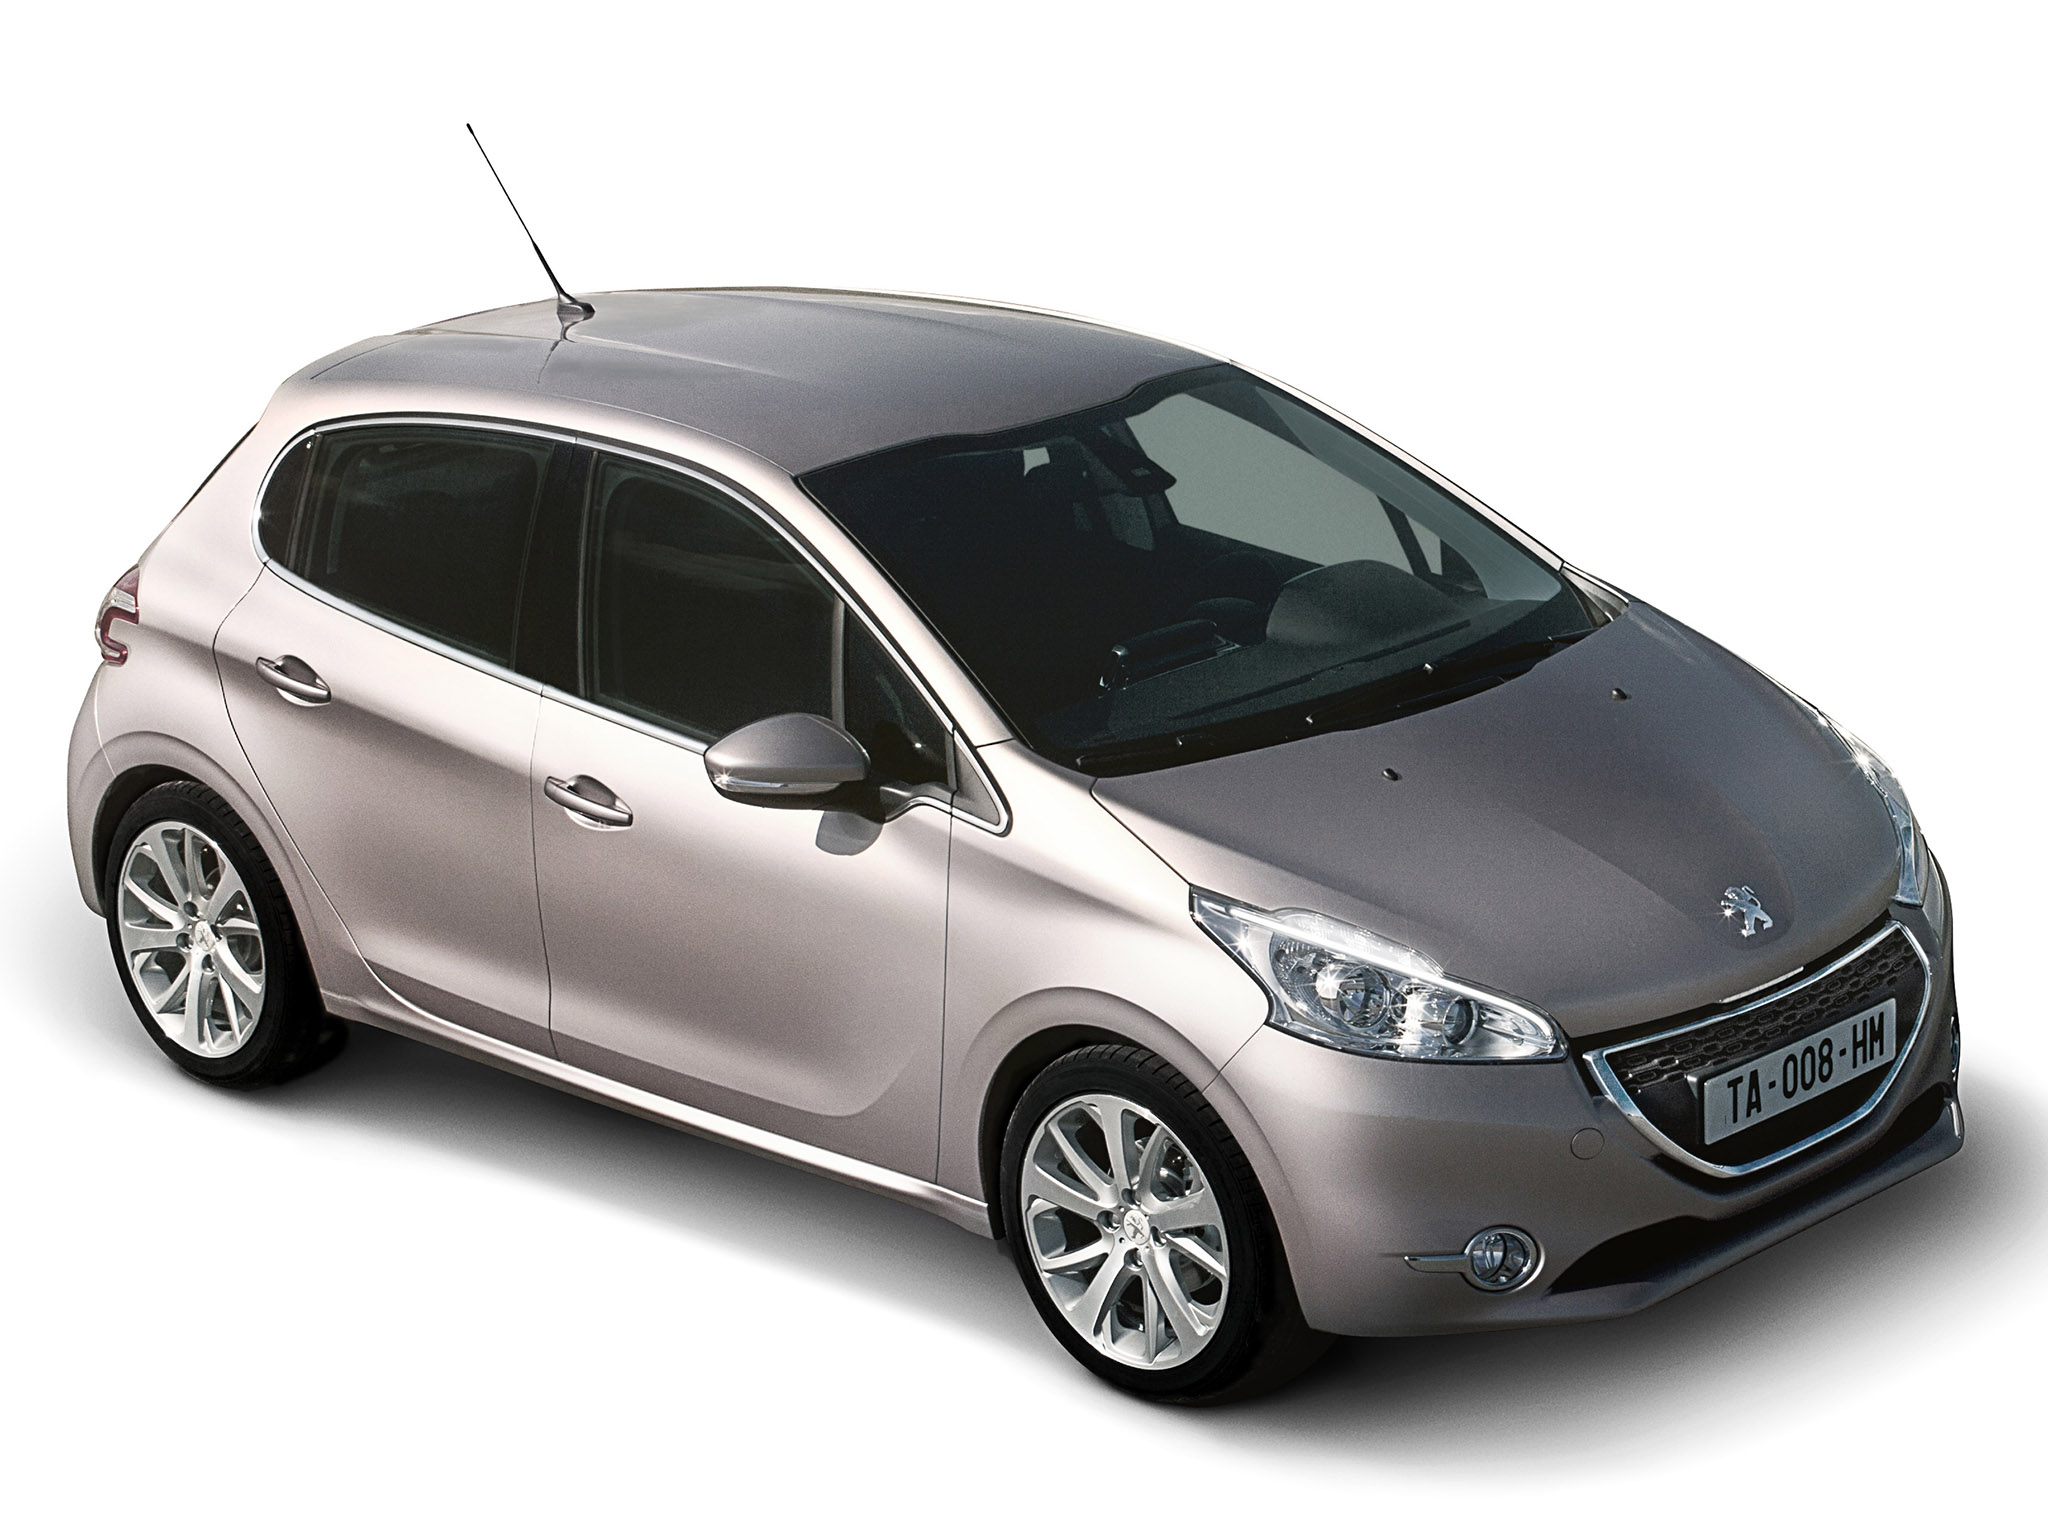 2012 peugeot 208 pictures information and specs auto. Black Bedroom Furniture Sets. Home Design Ideas